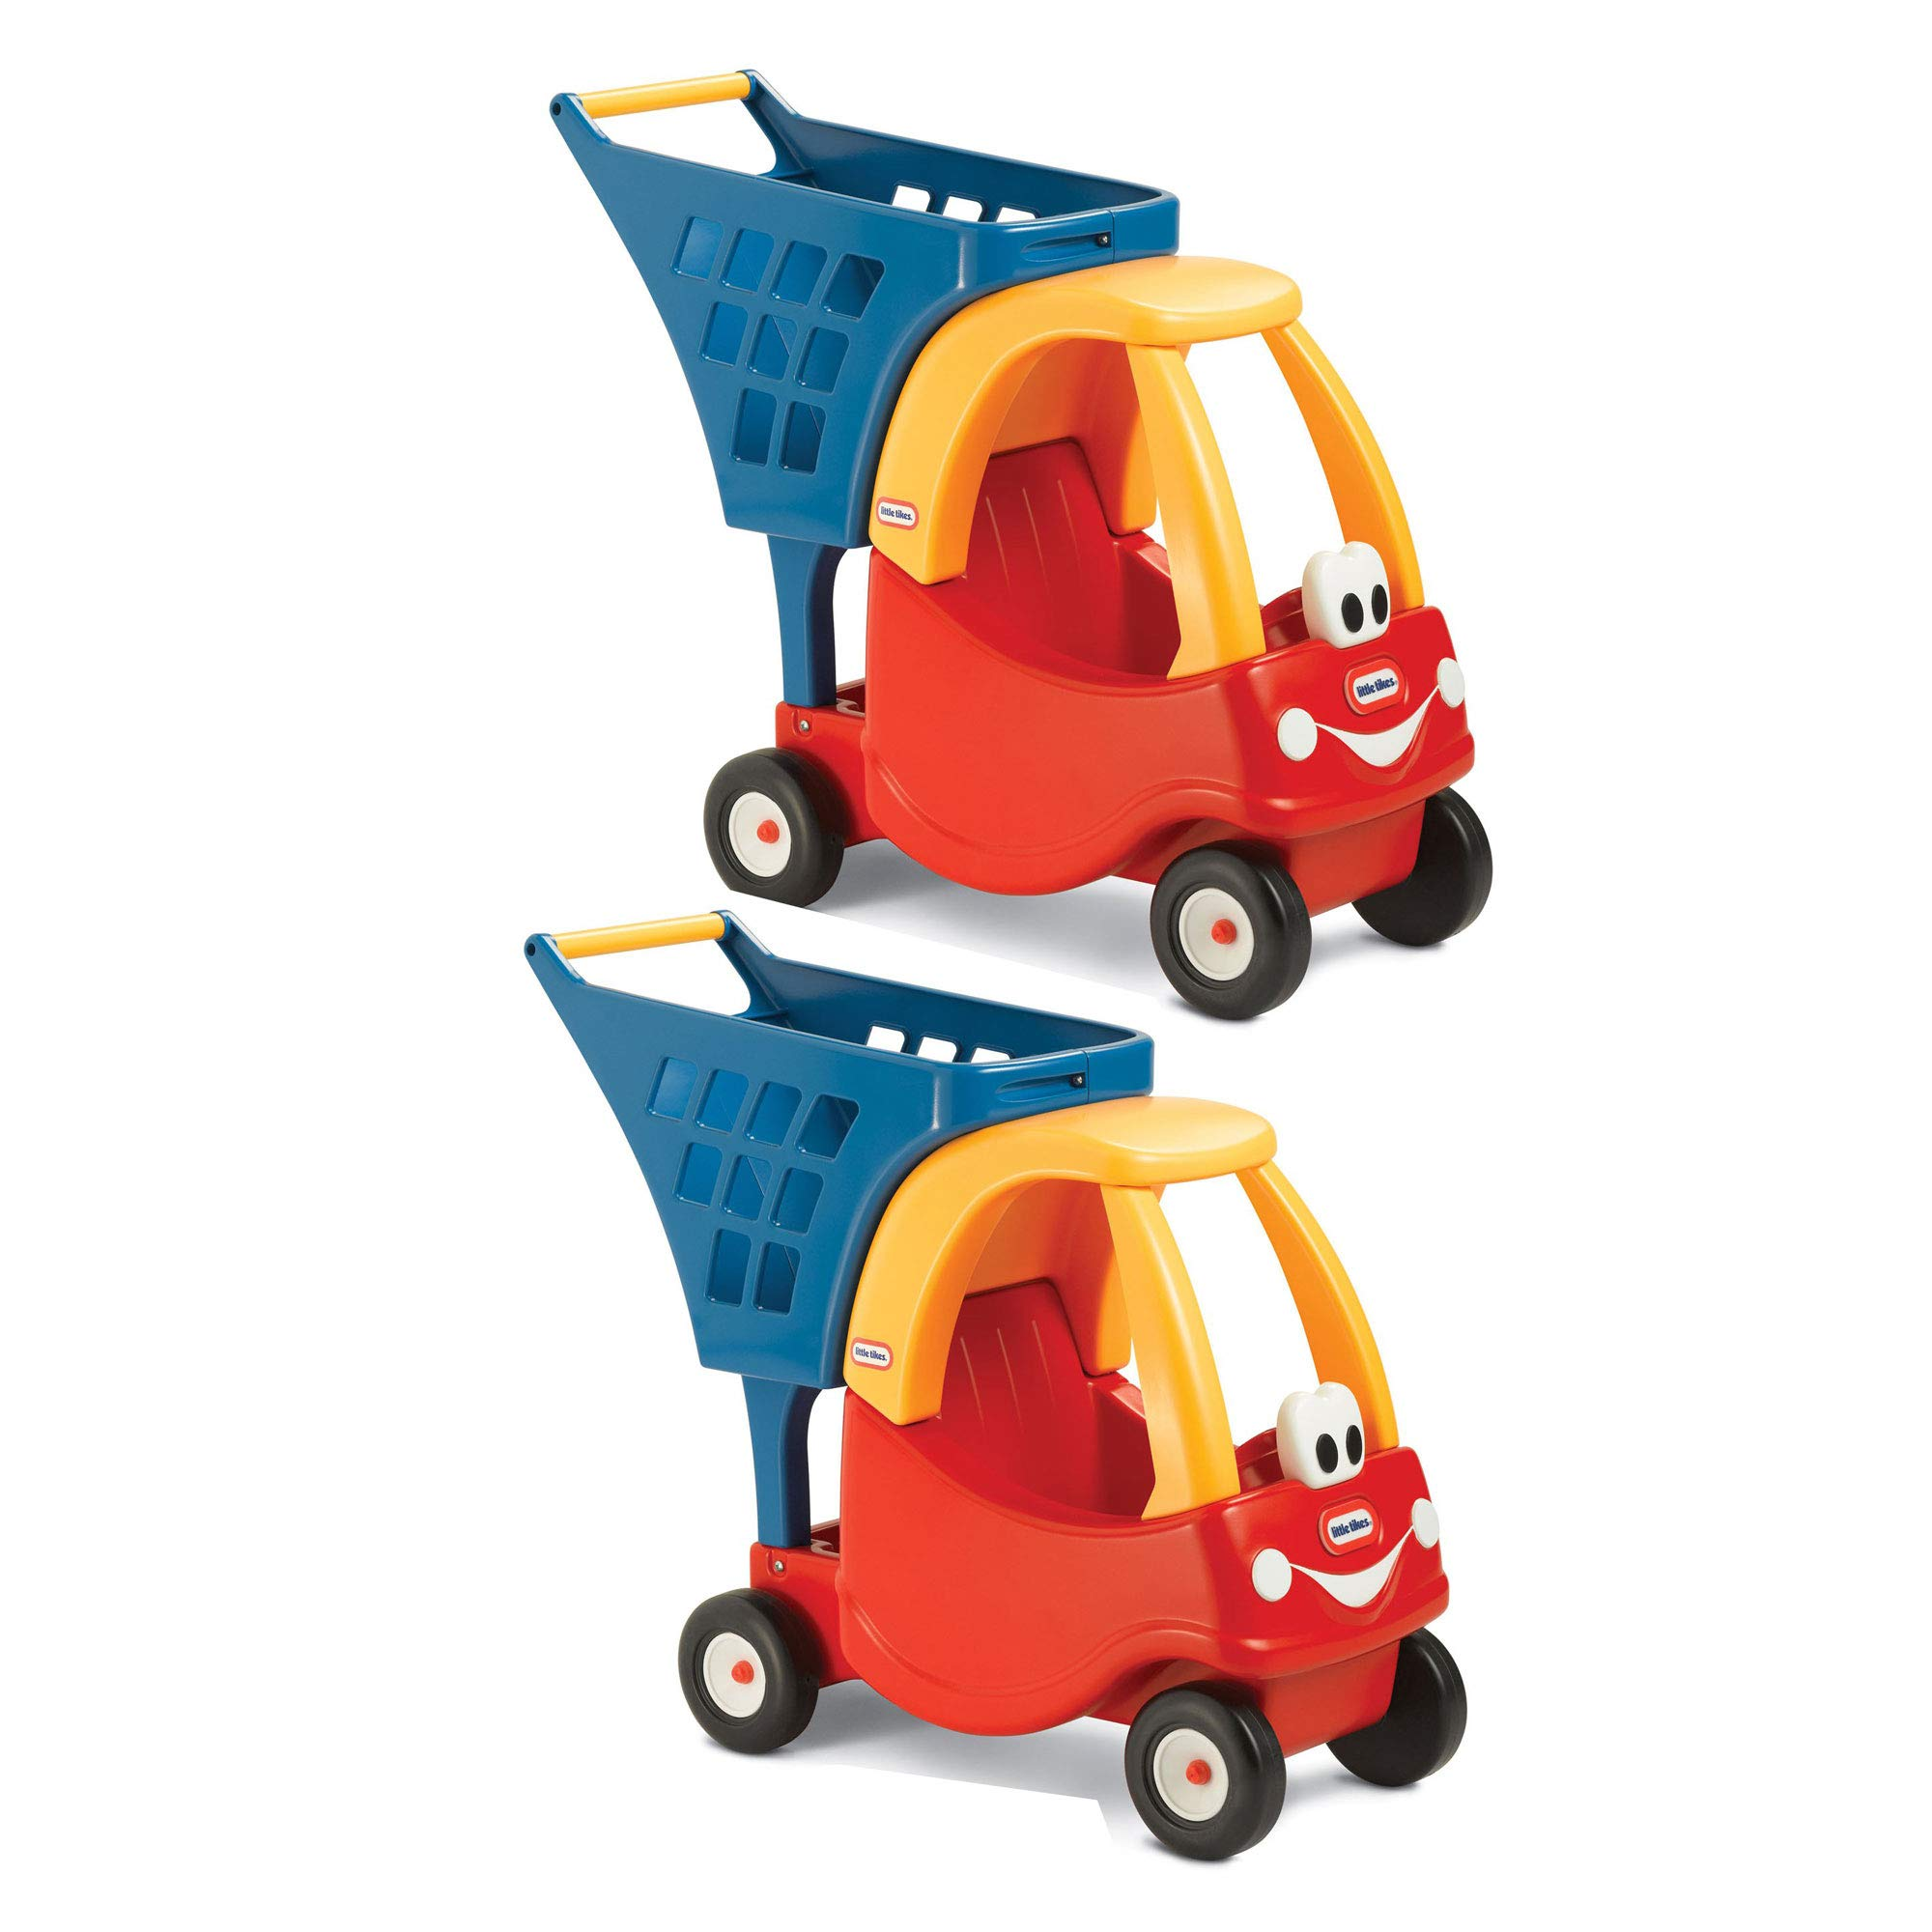 Little Tikes Cozy Coupe Kids Pretend Grocery Store Shopping Cart, Red (2 Pack)